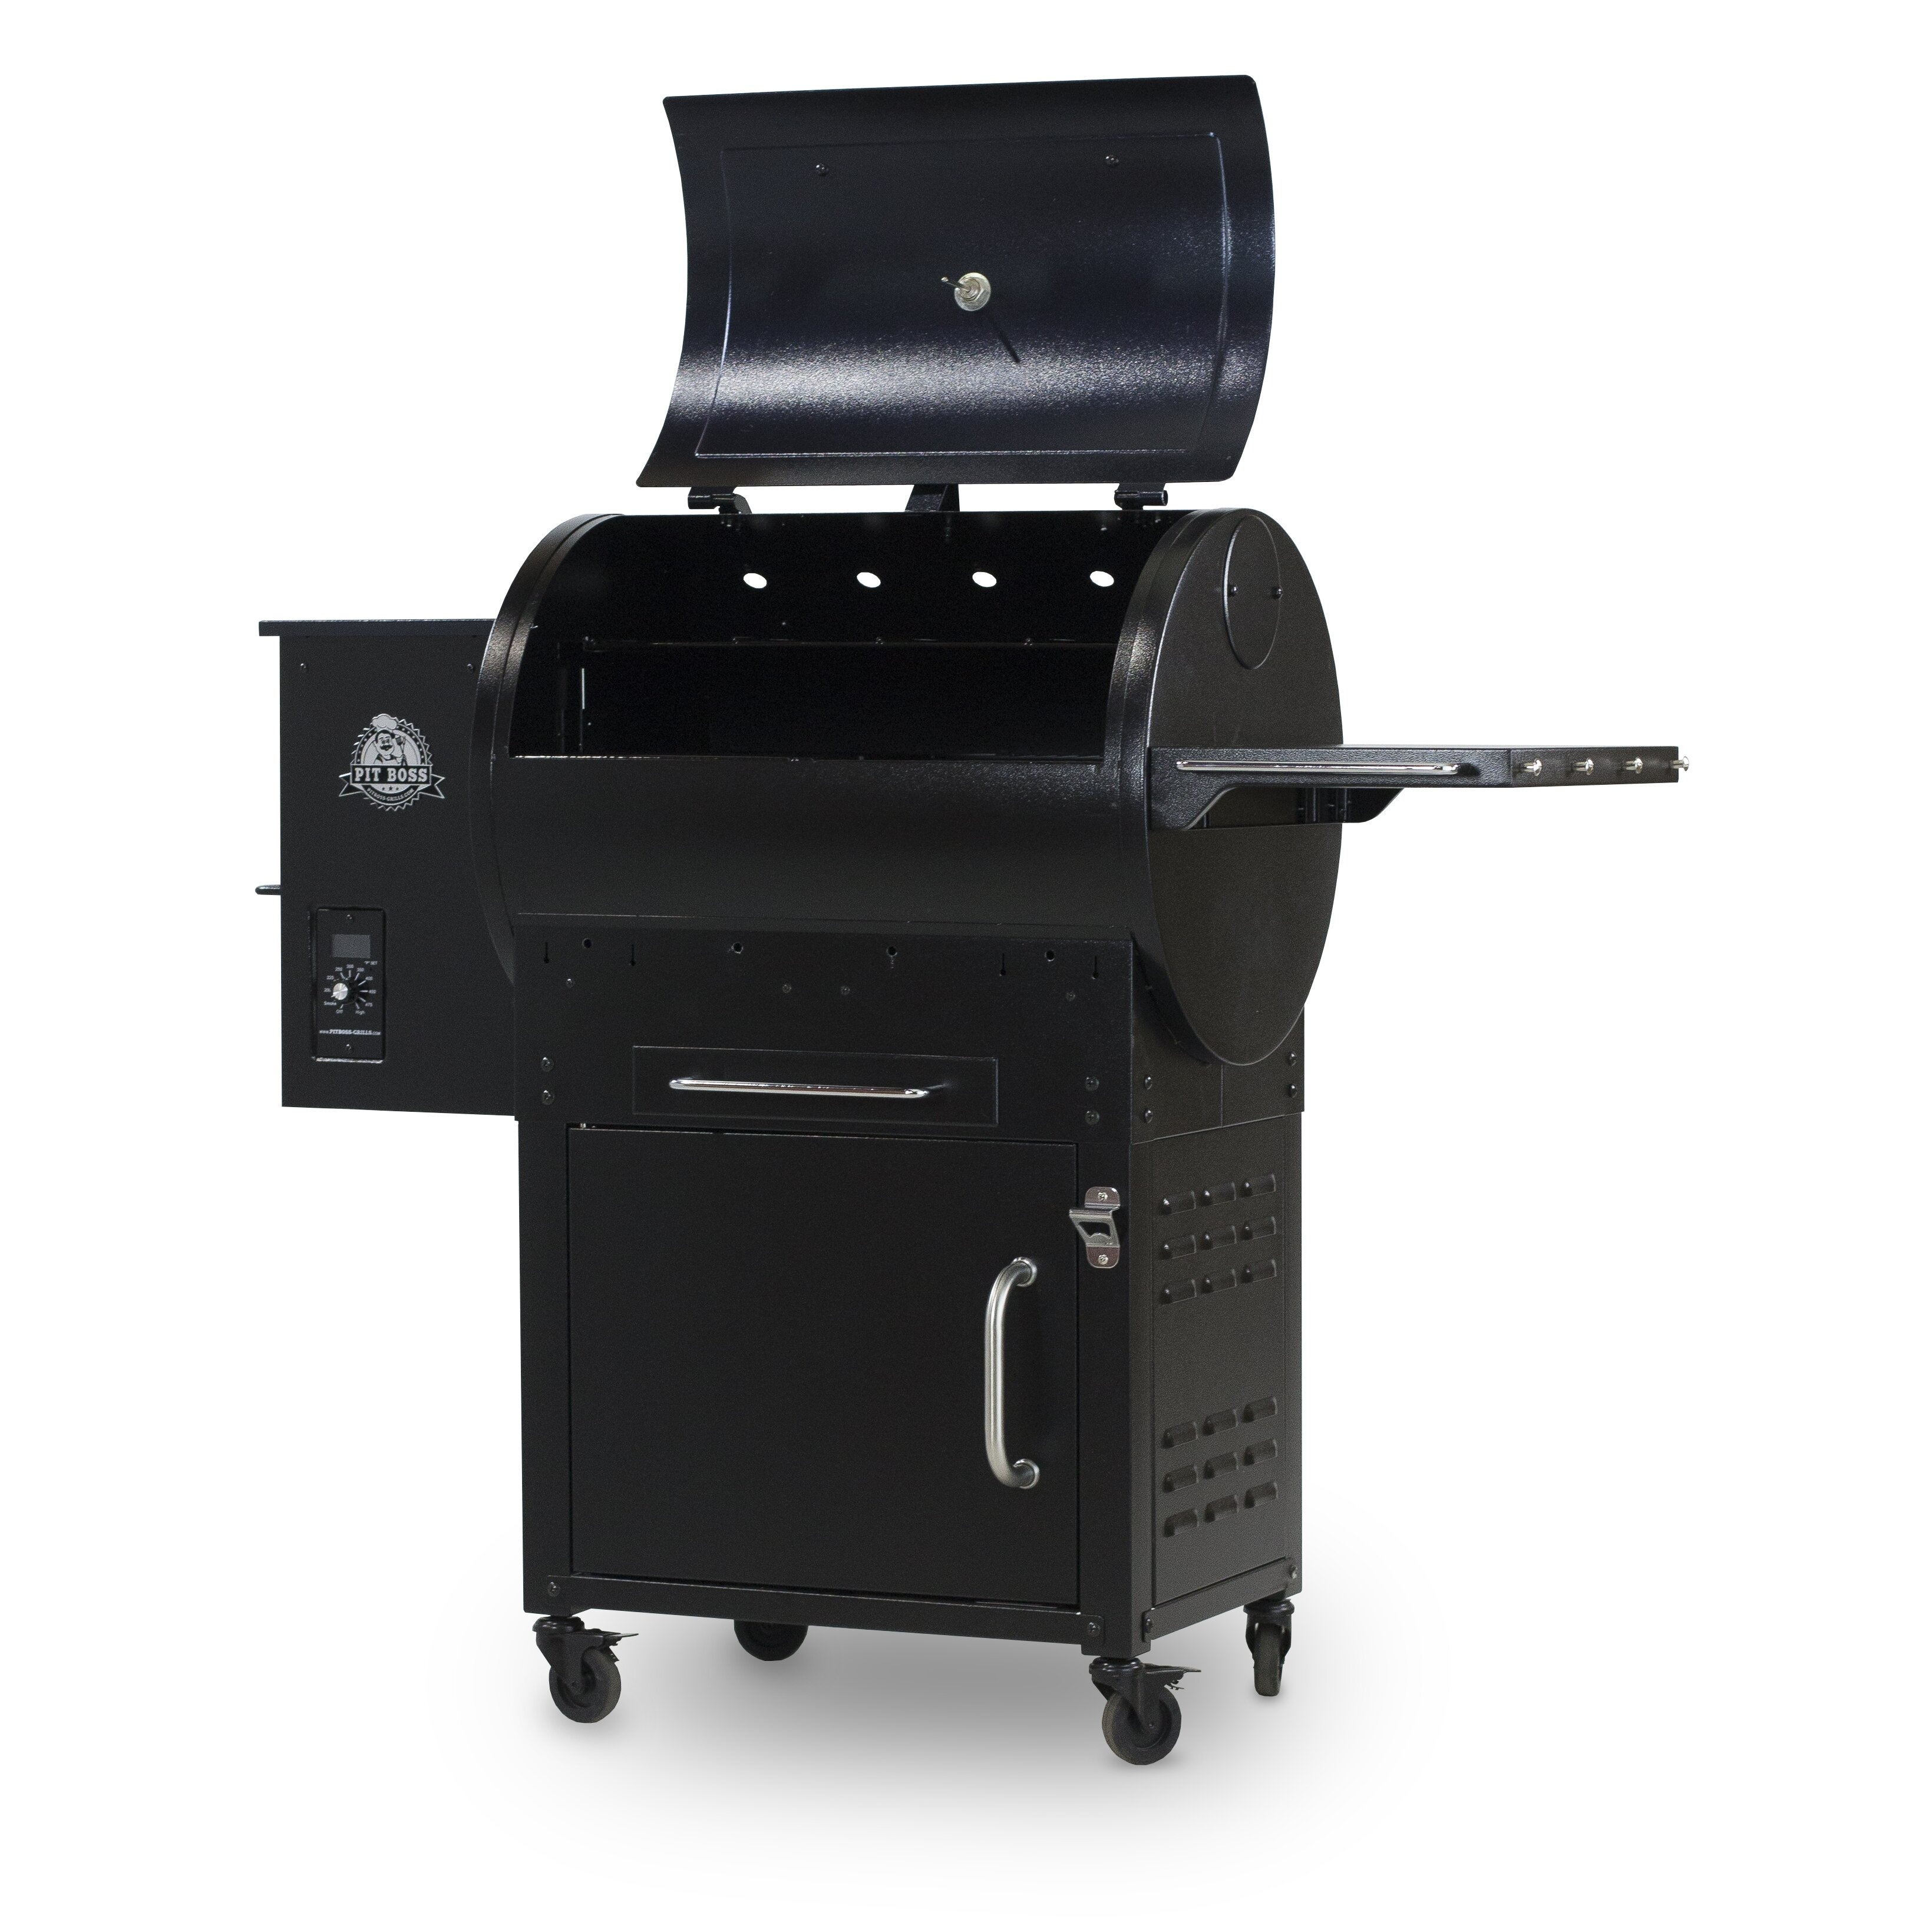 Pit Boss Pit Boss 700sc Wood Pellet Grill With Smoker